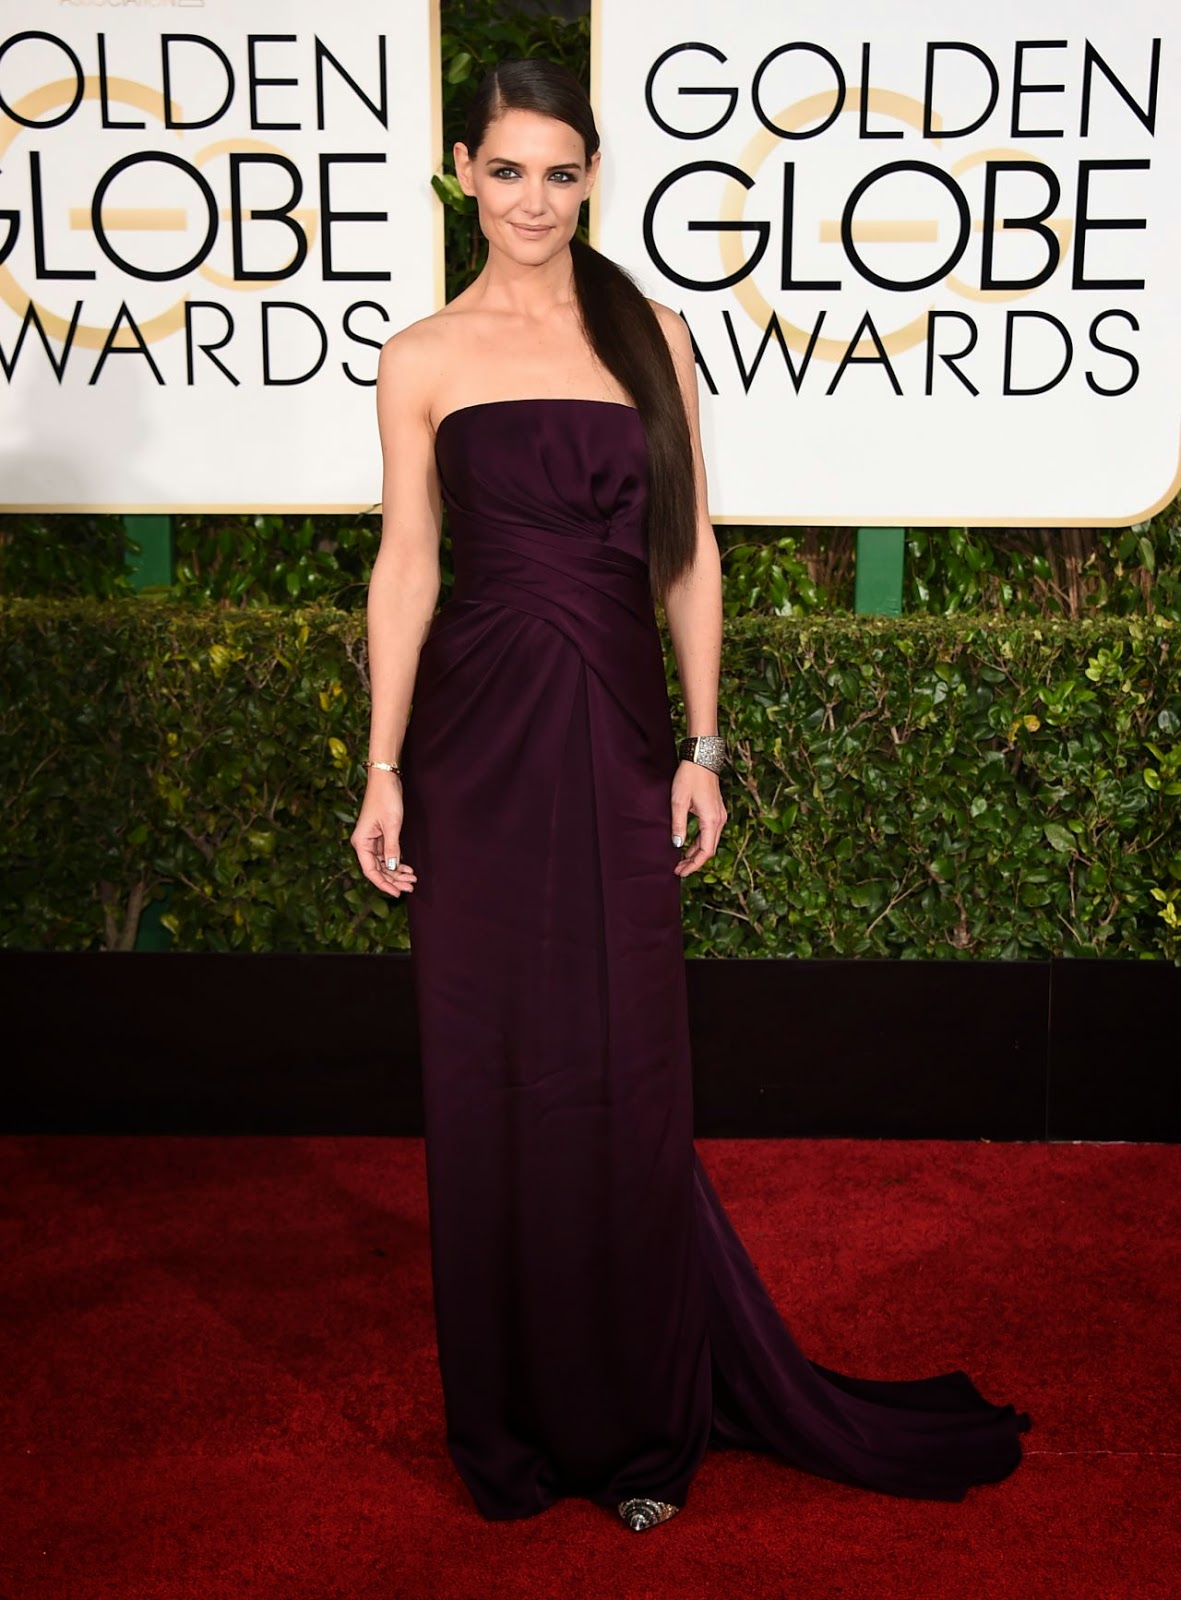 Katie Holmes stuns in a strapless violet gown at the 2015 Golden Globe Awards